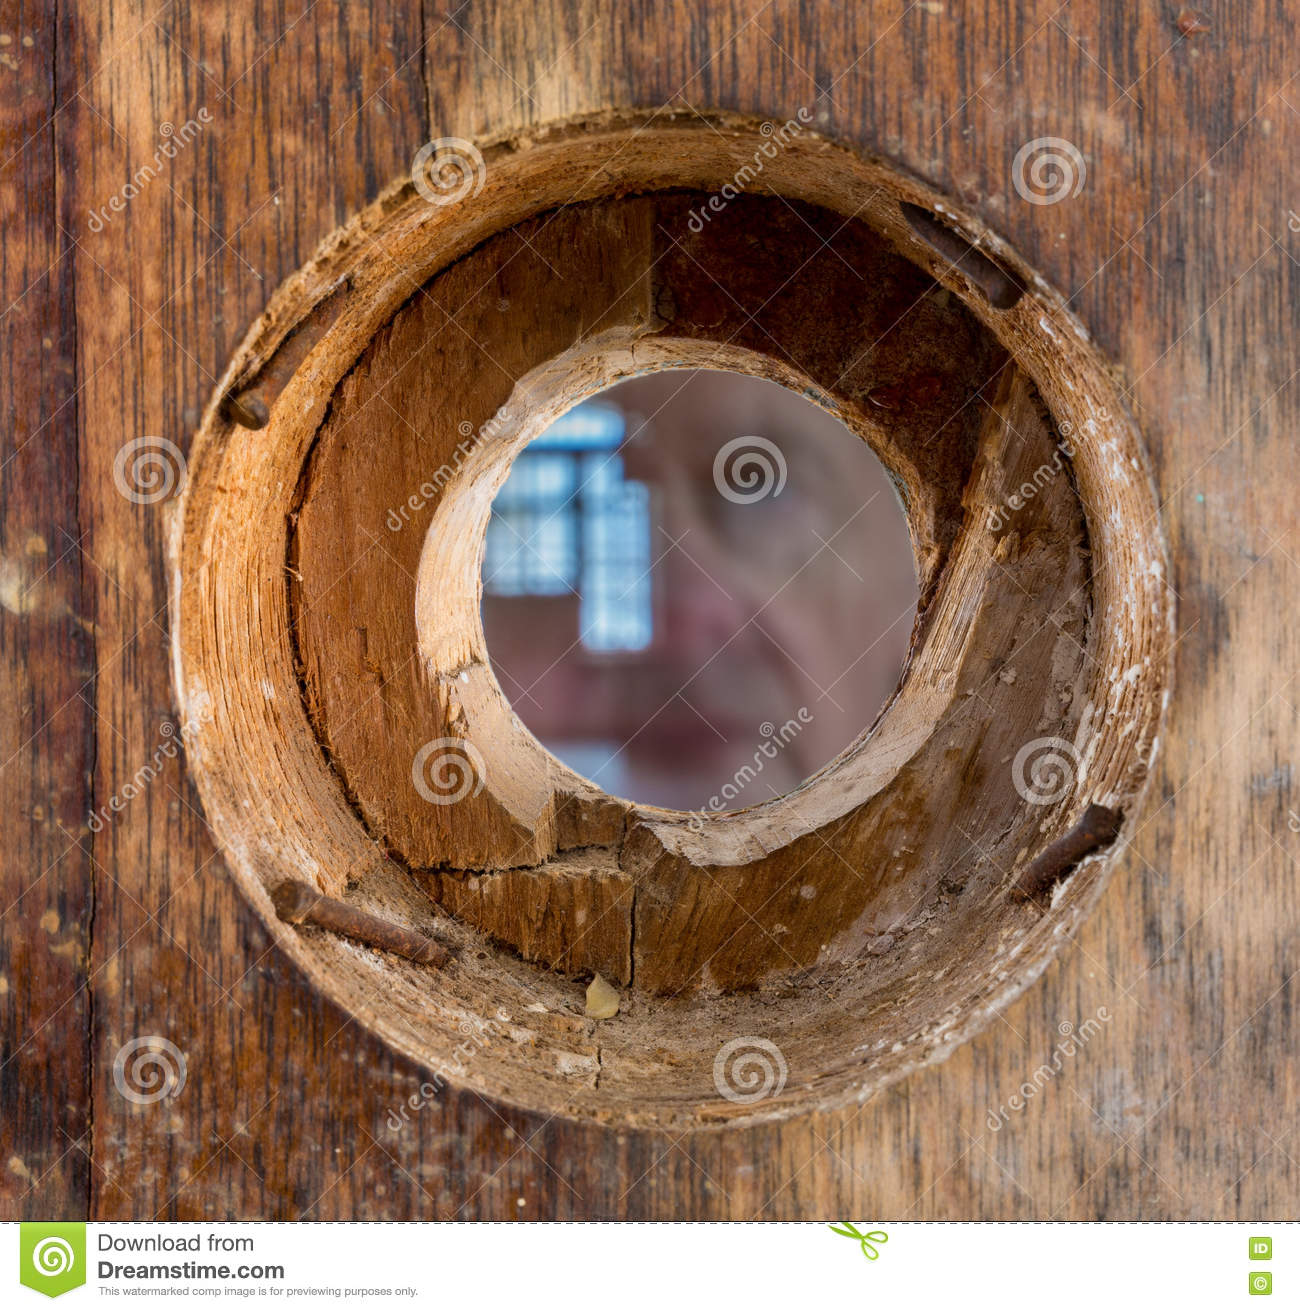 Ghostly Face And Eye Looking Through Peephole Royalty Free